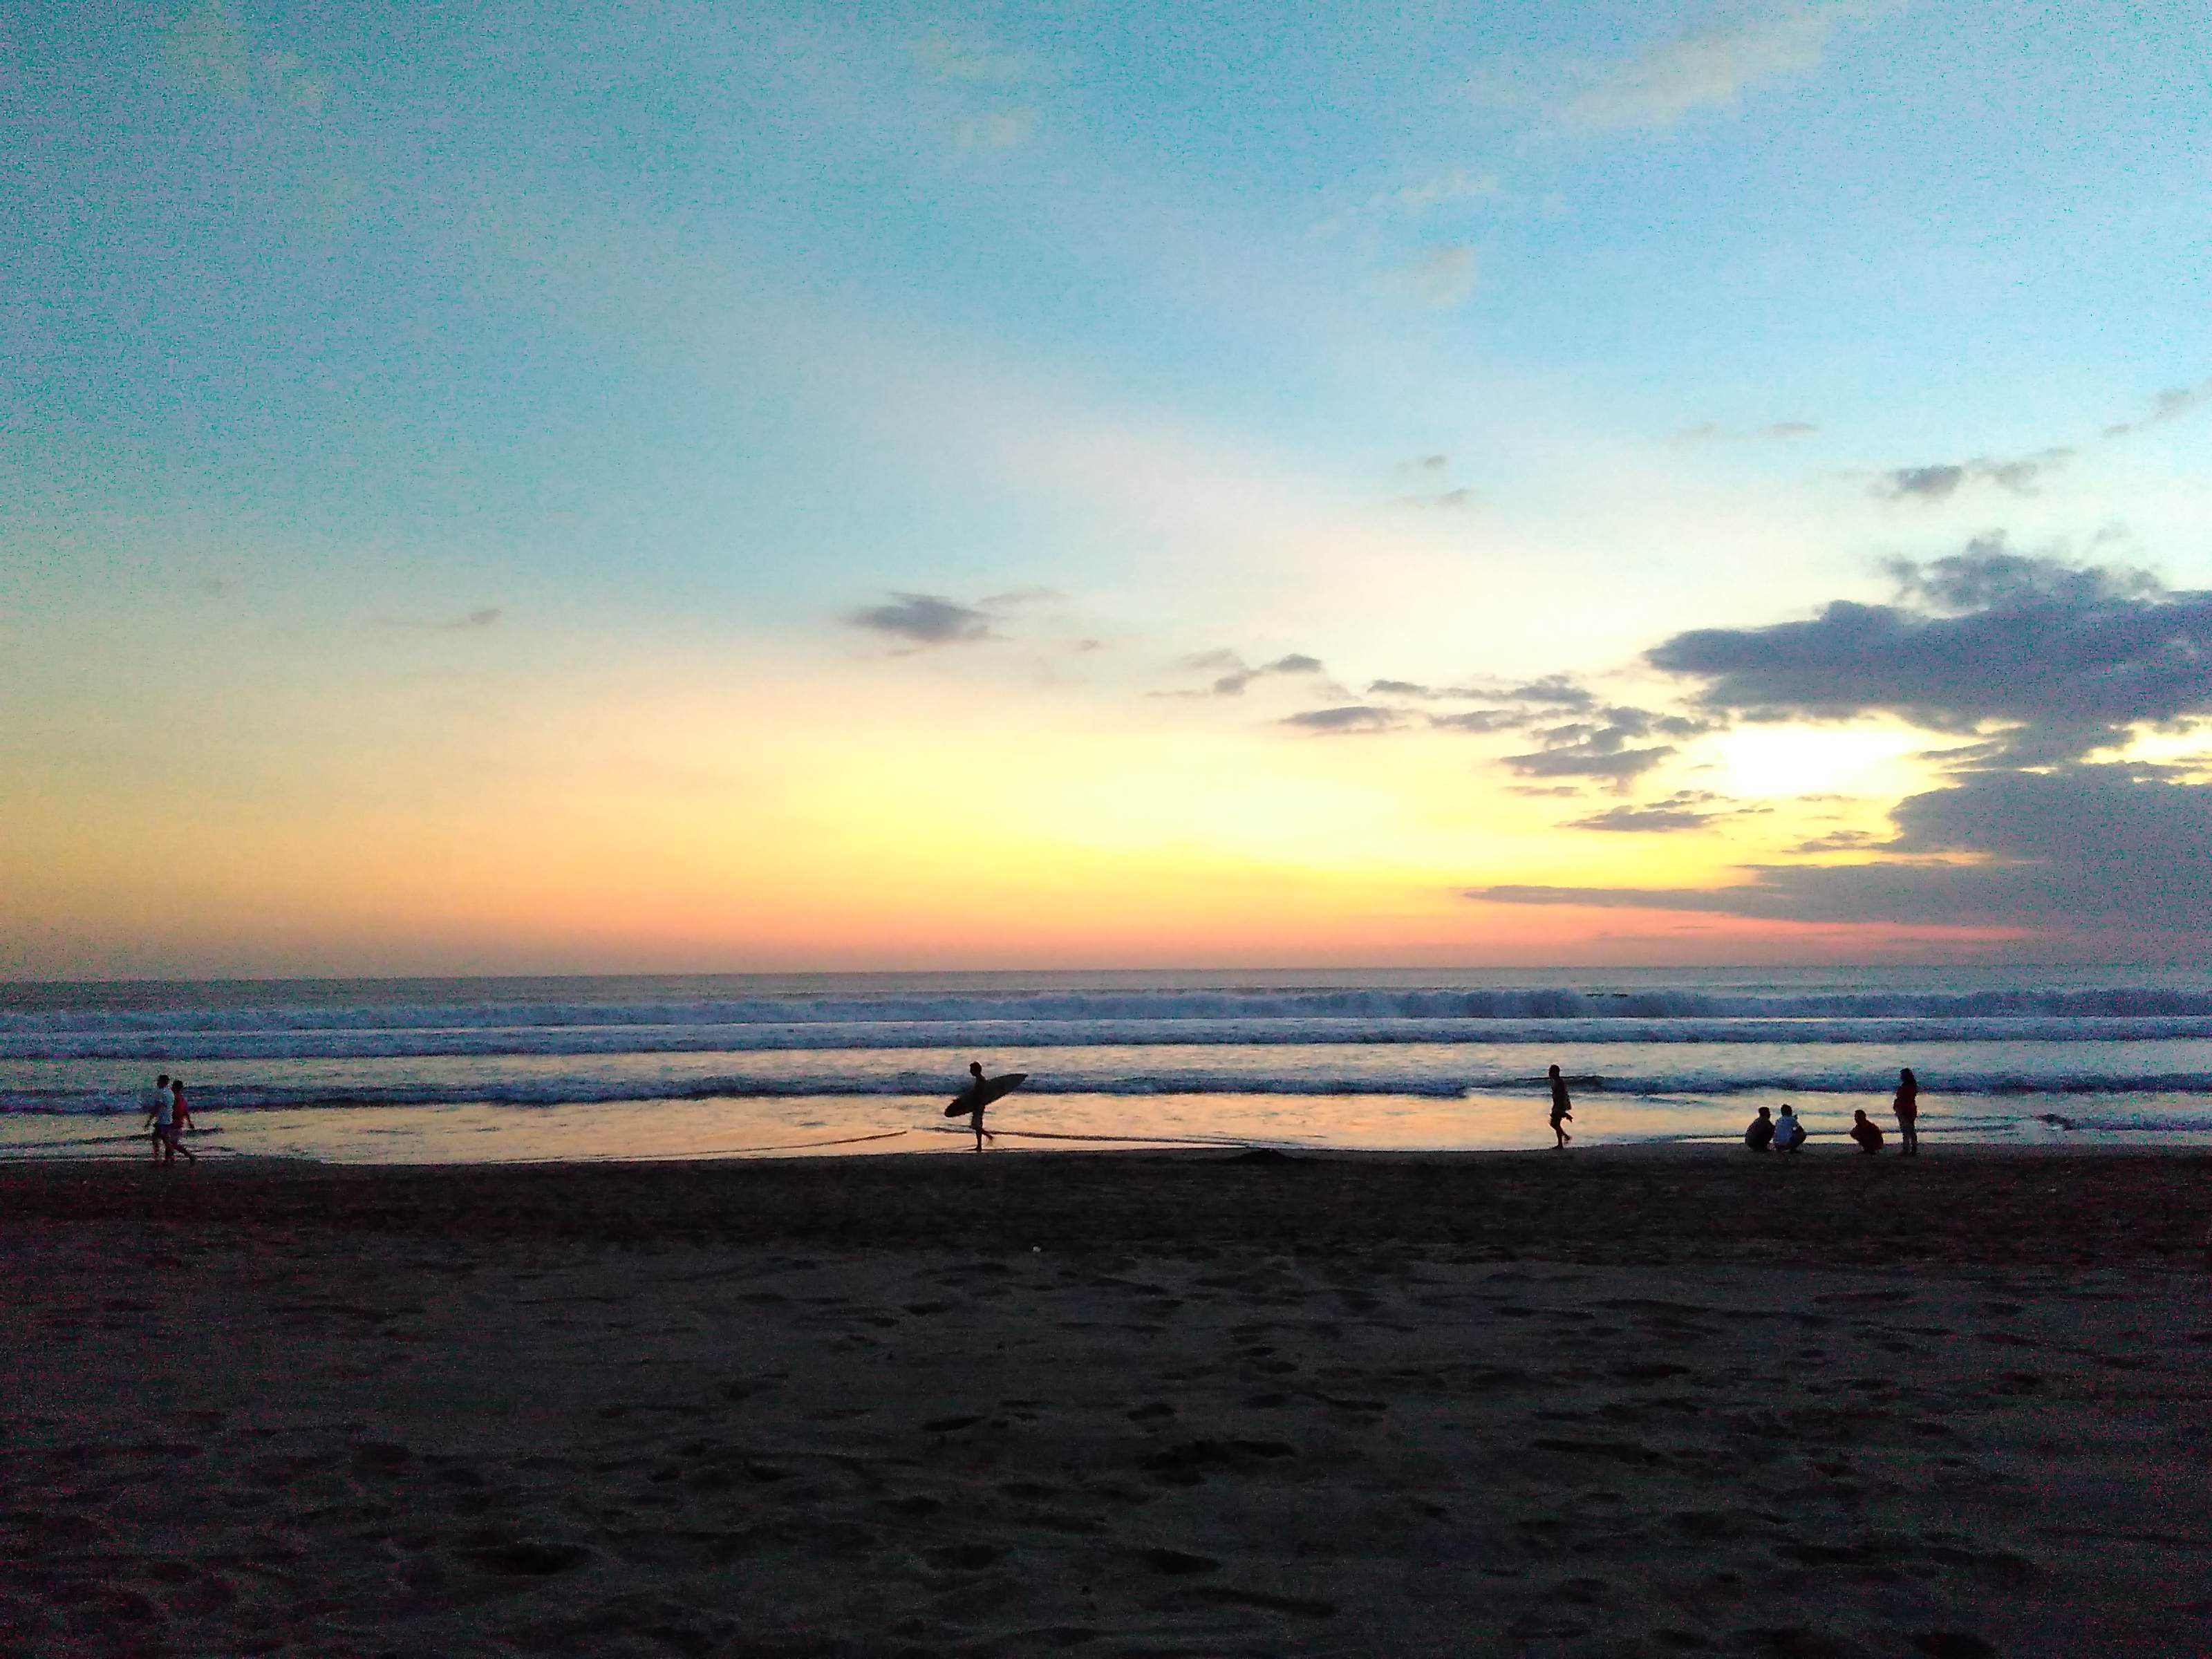 Surfers at Legian Beach Bali